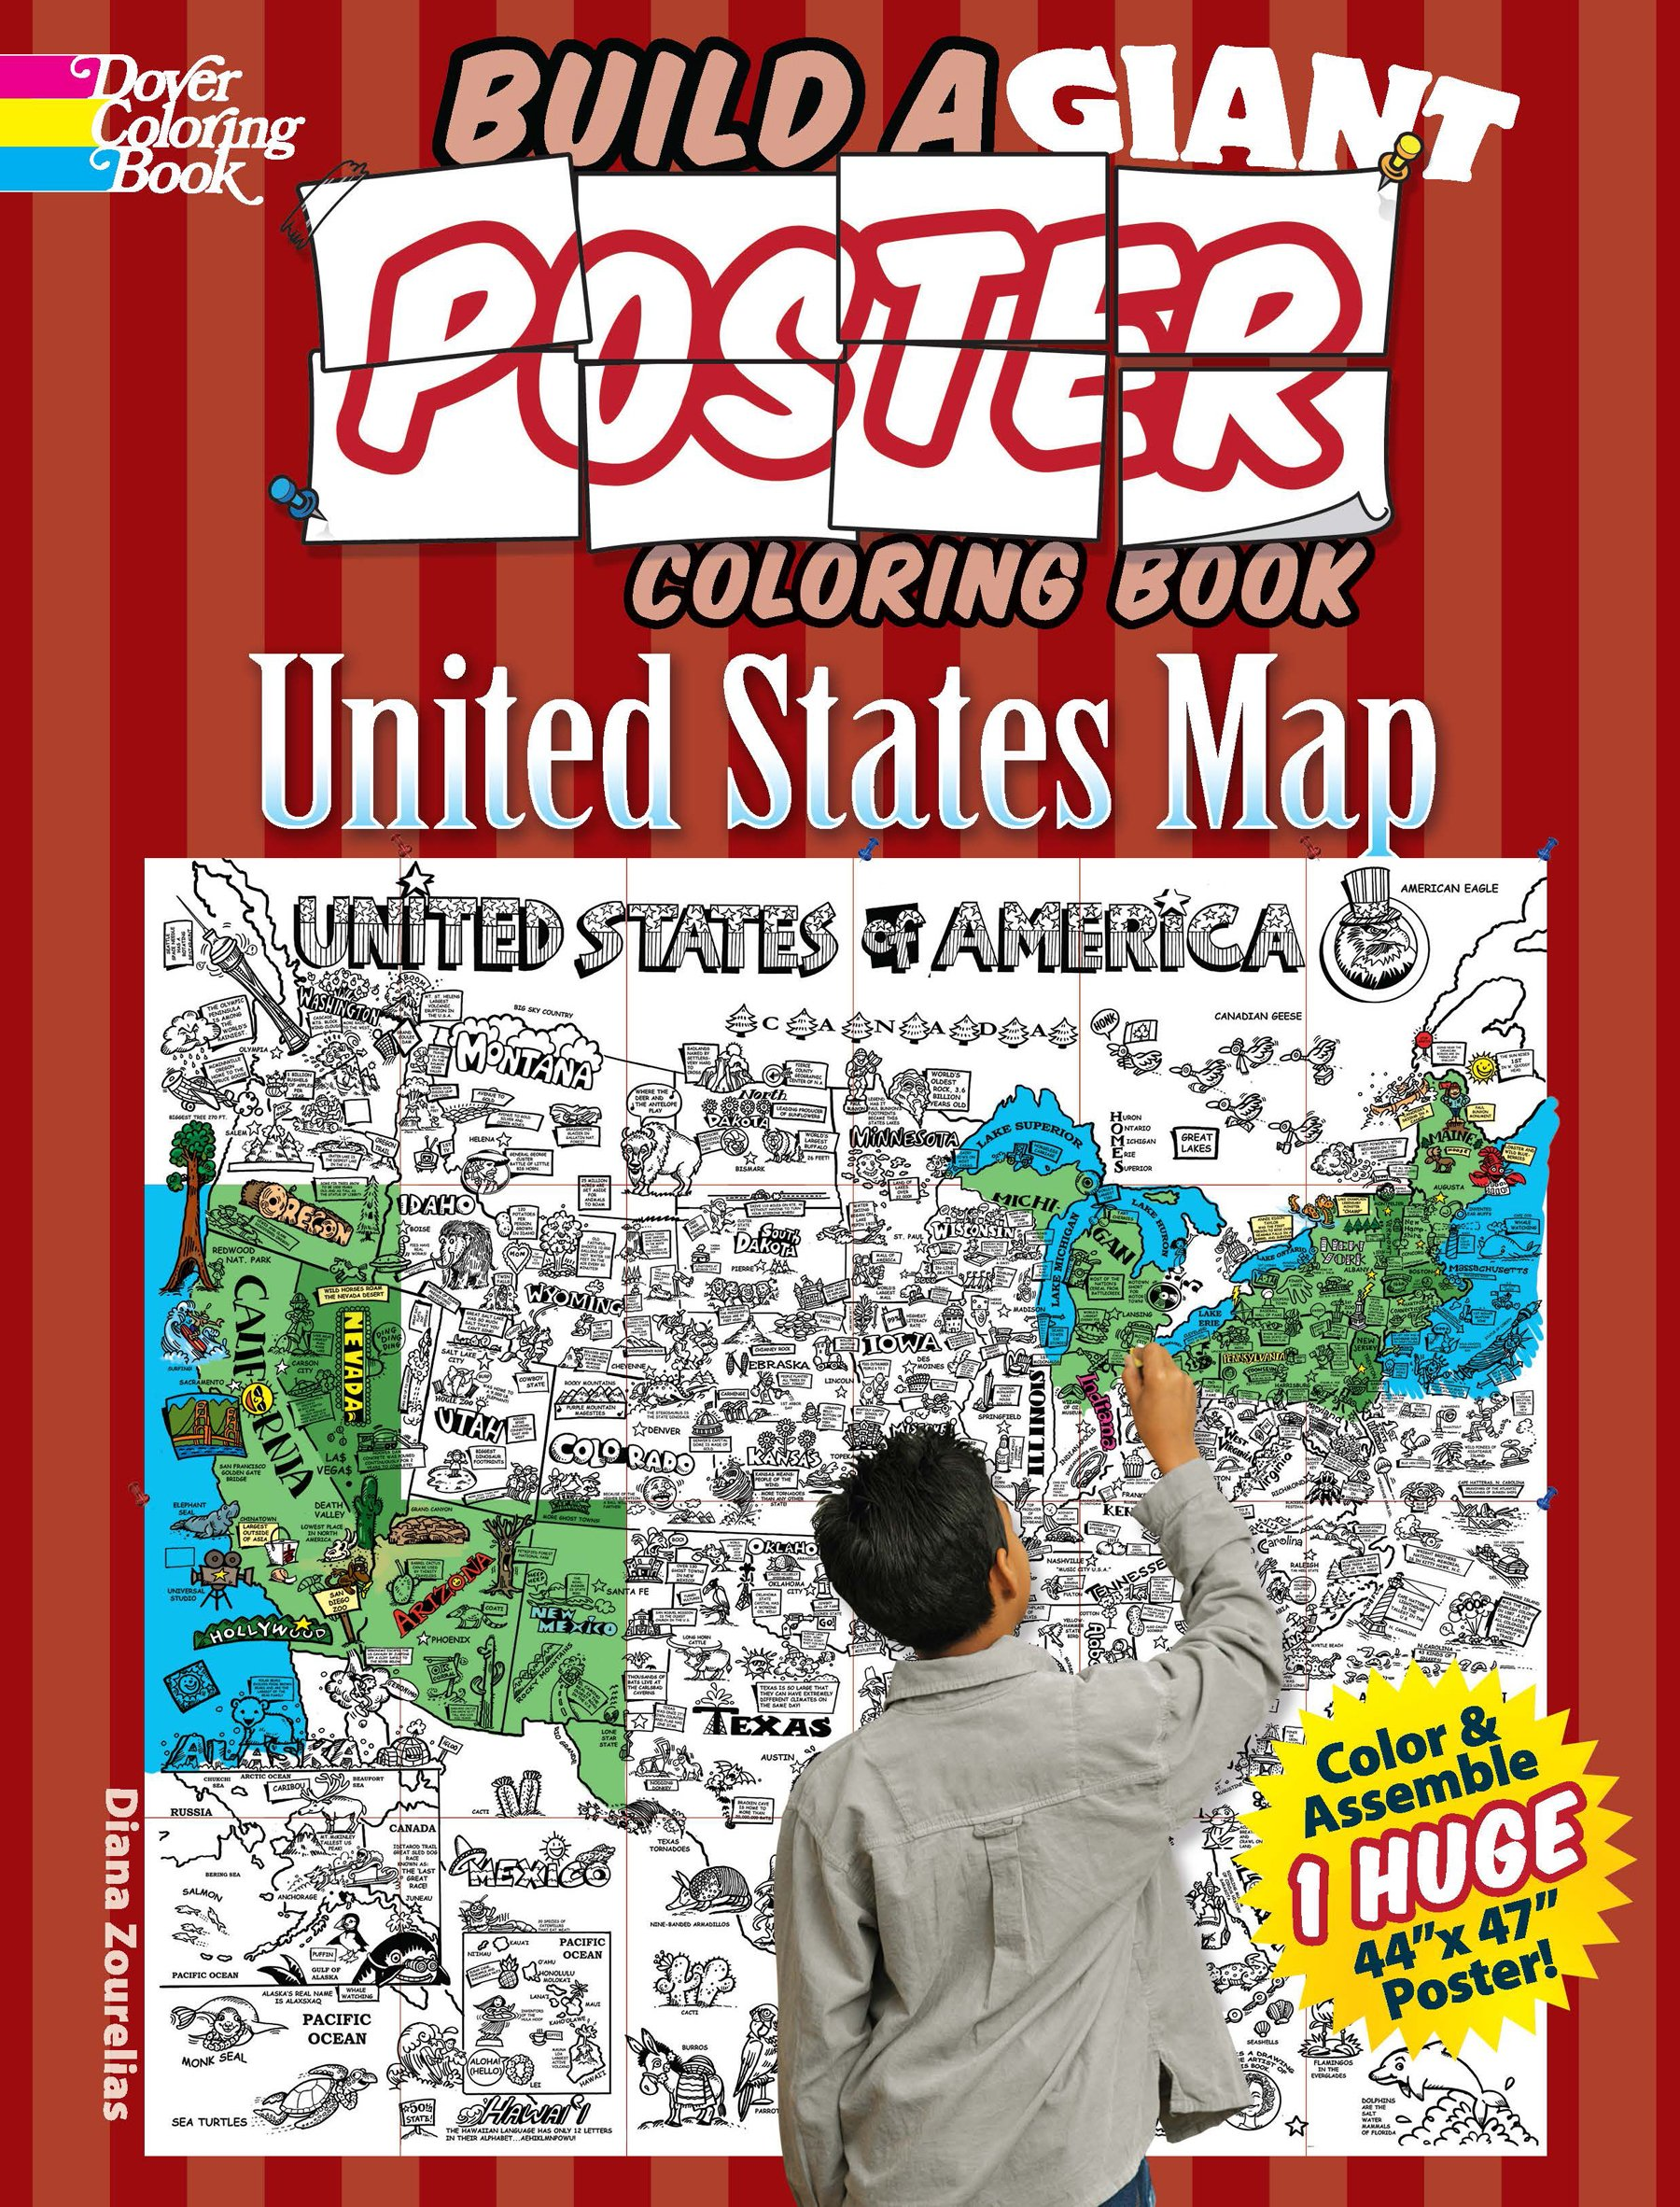 united states map coloring book Build a Giant Poster Coloring Book    United States Map (Dover